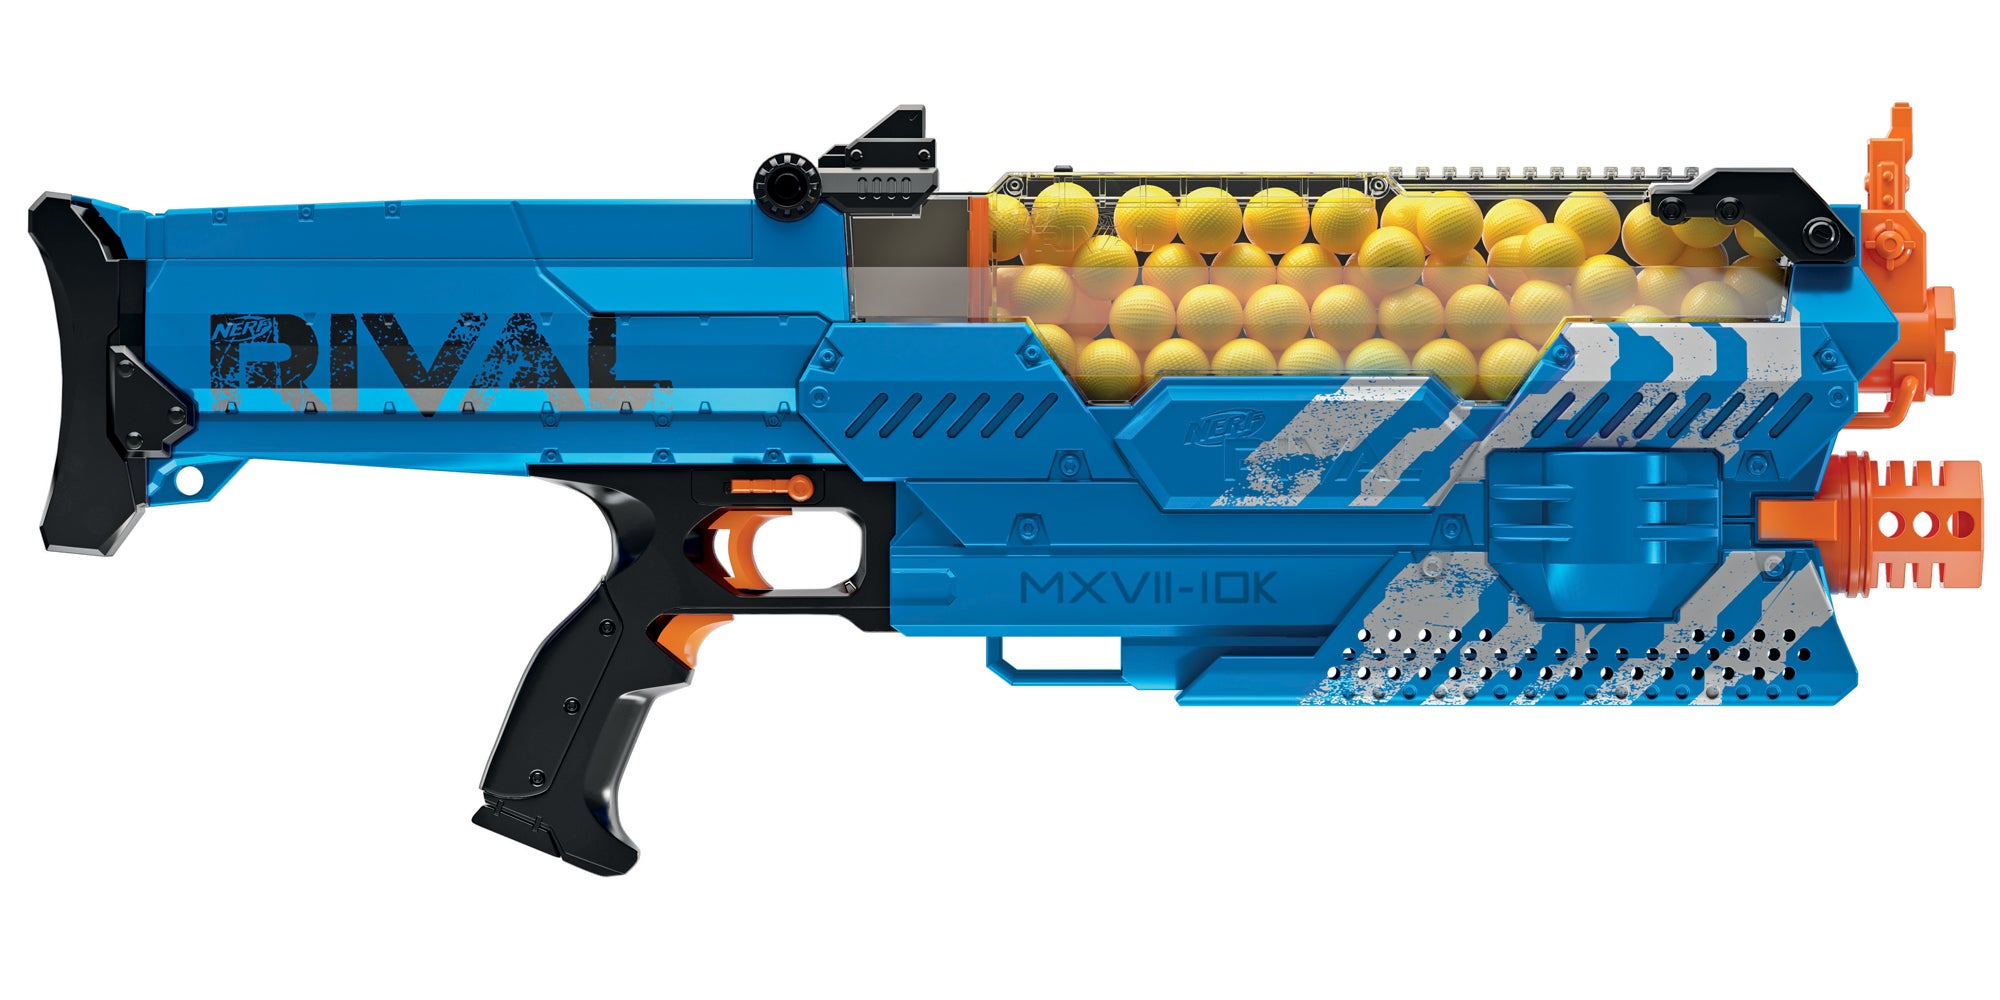 A few years ago Nerf decided the best way to lure teens away from paintball and back to its foam darts was with a new line of blasters capable of firing